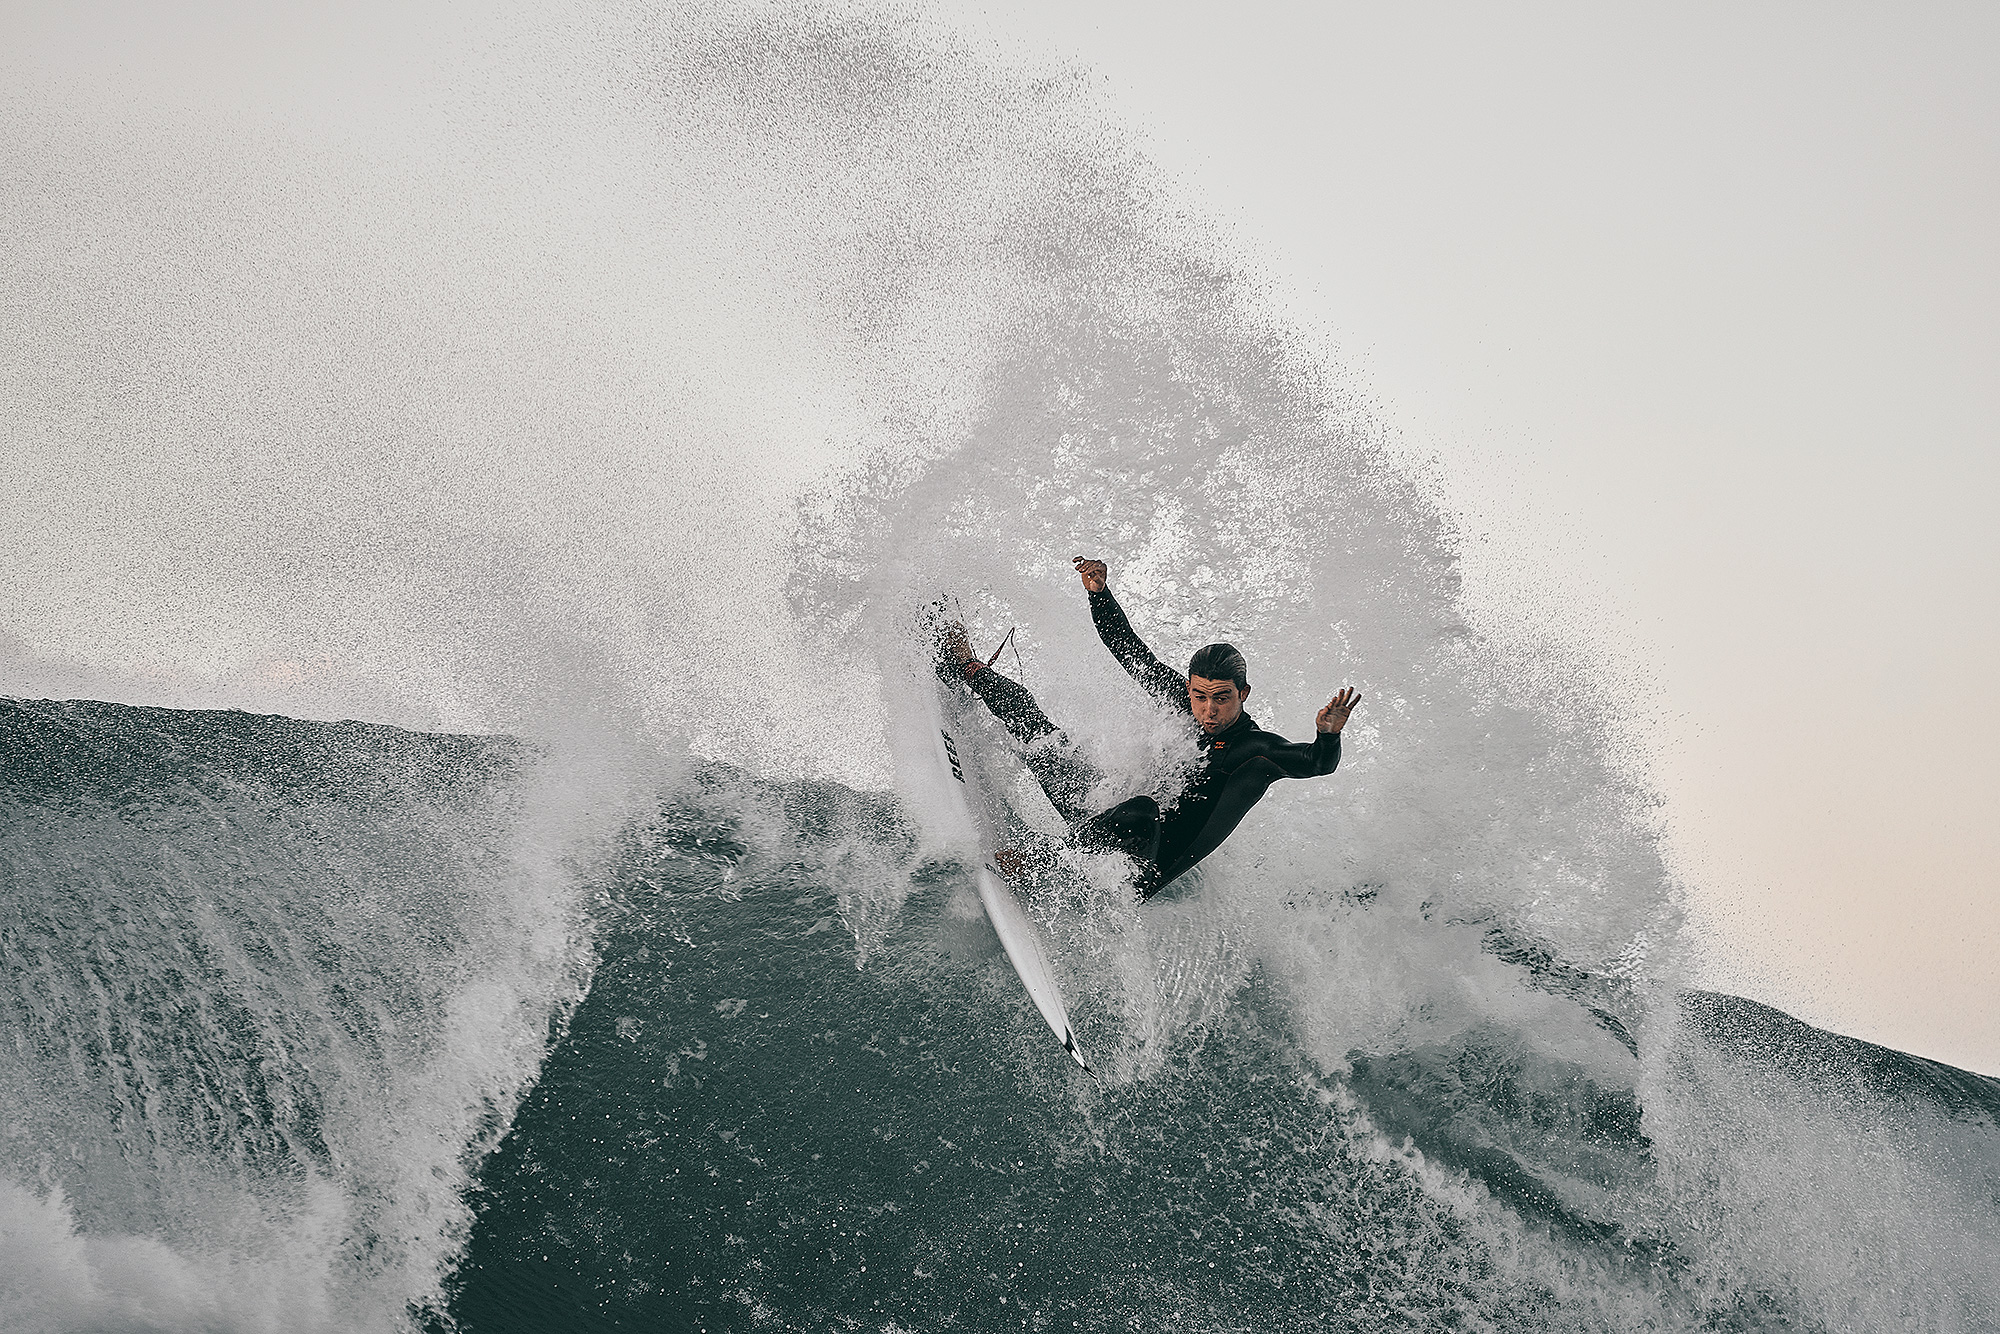 Griffin Colapinto smashing the lip